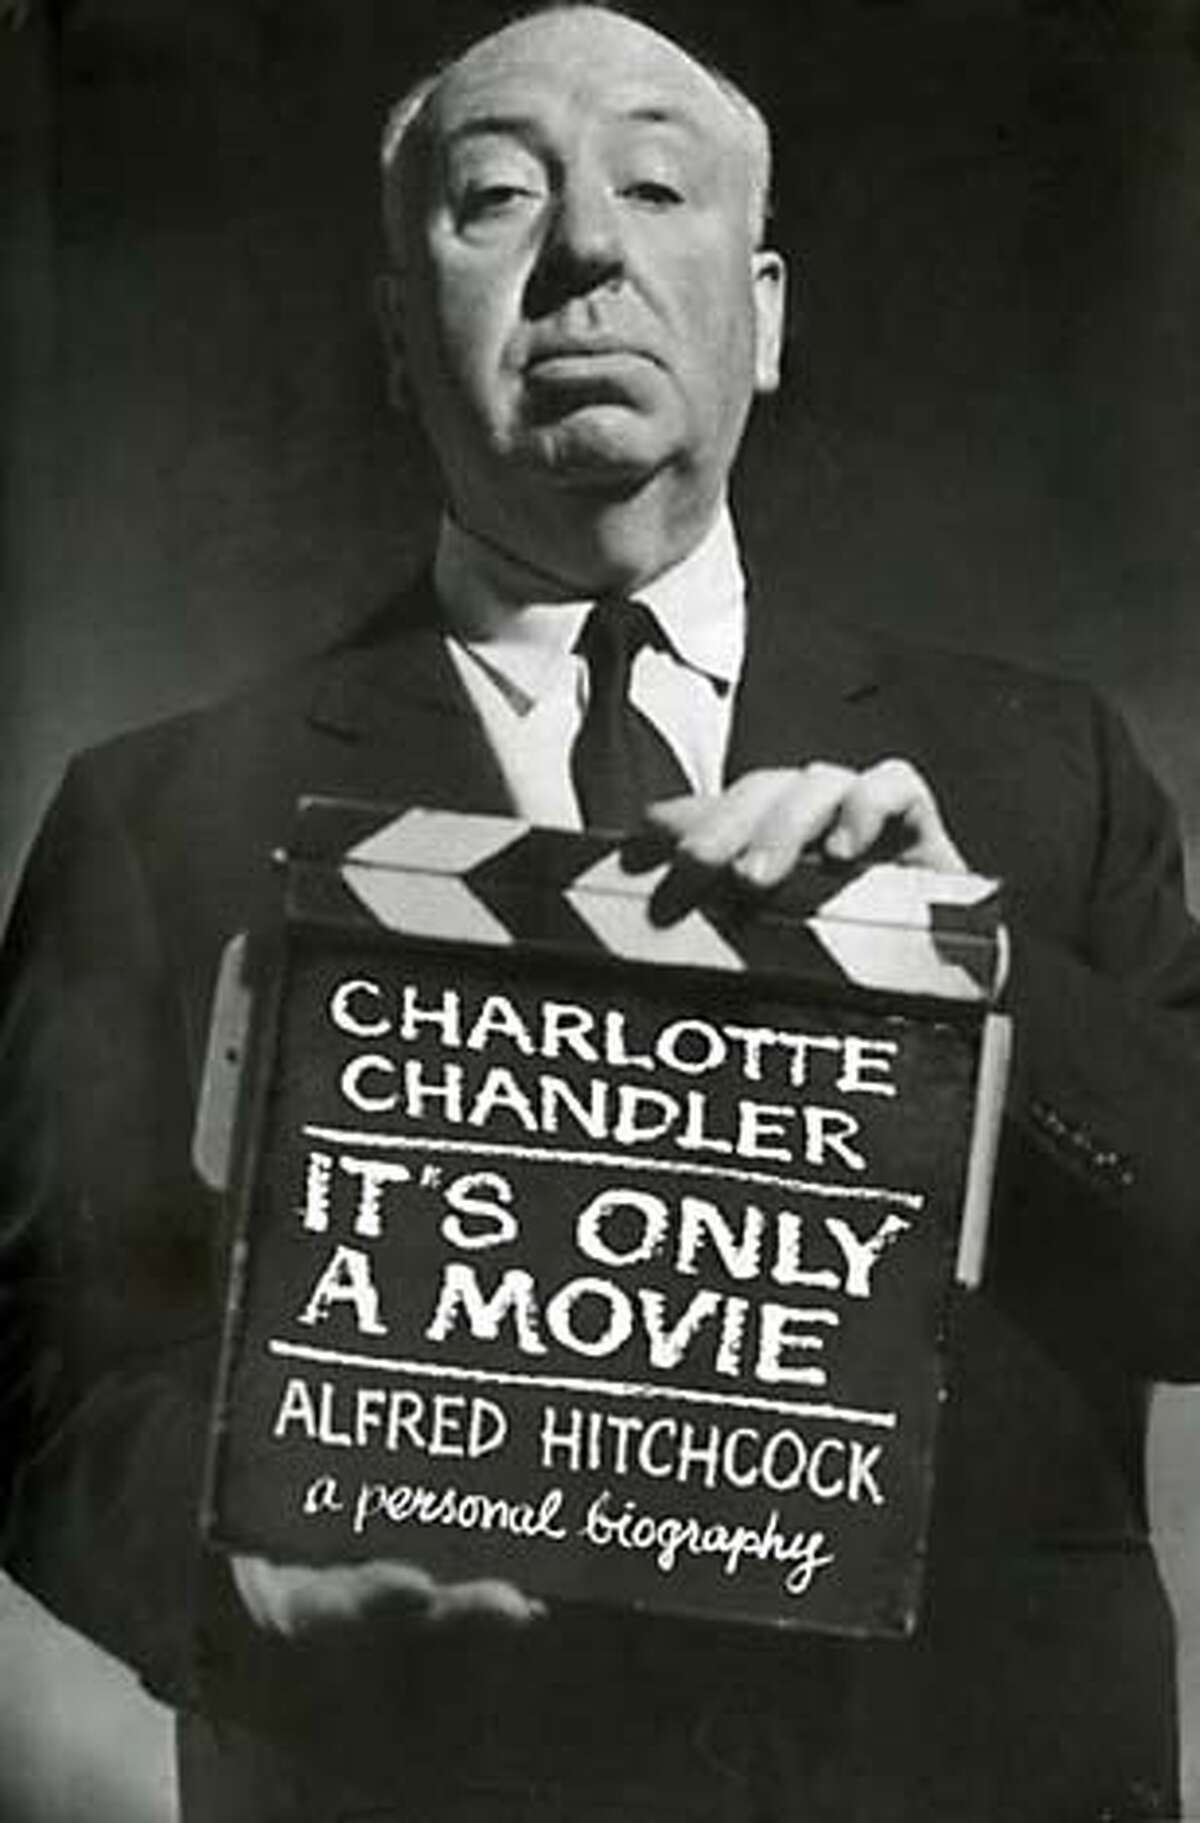 Author: Charlotte Chandler Book Title: It's Only a Movie about: Alfred Hitchcock, a personal biography